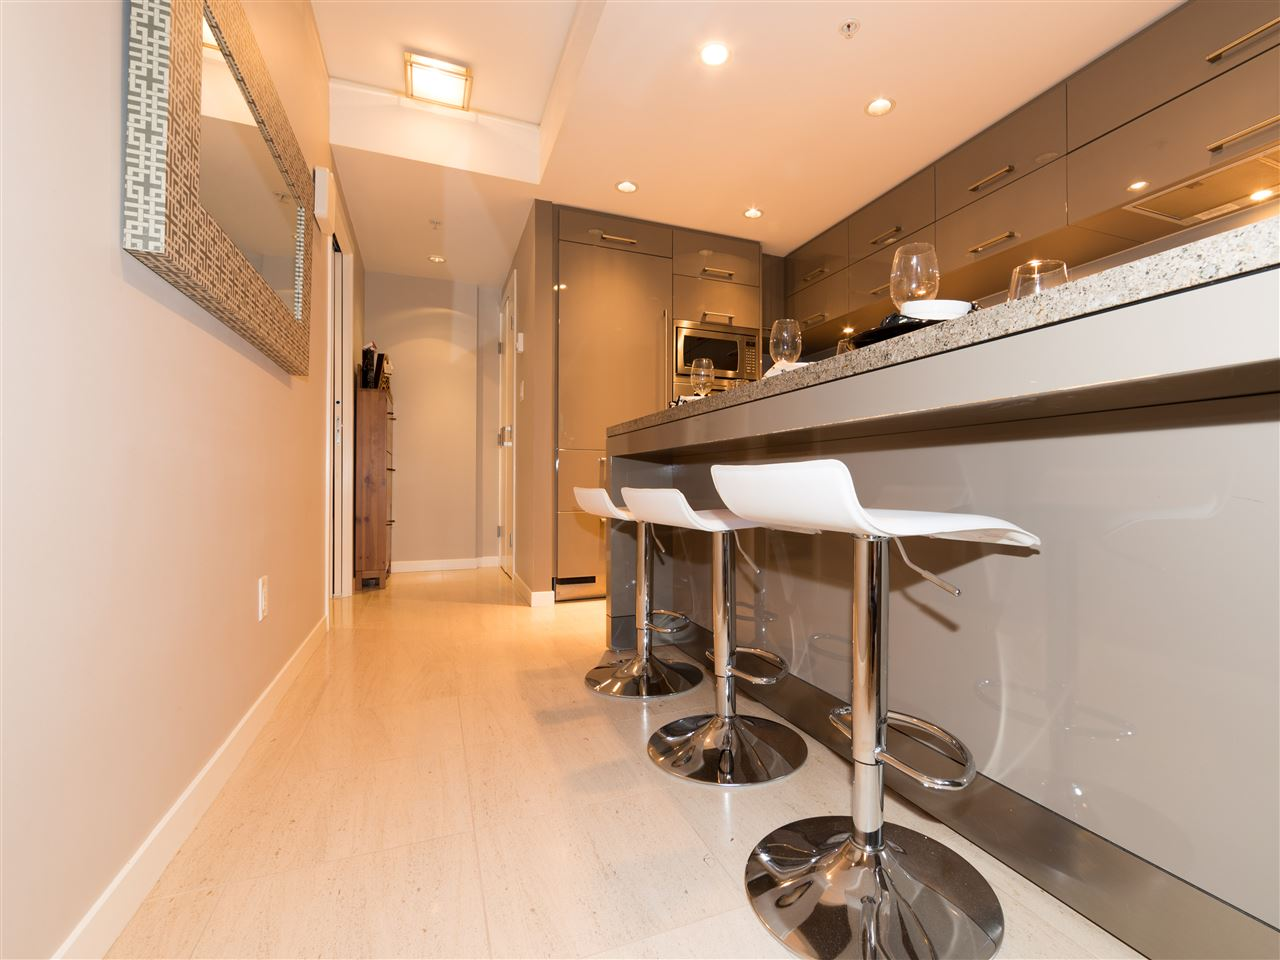 Condo Apartment at TH8 5991 WALTER GAGE ROAD, Unit TH8, Vancouver West, British Columbia. Image 9